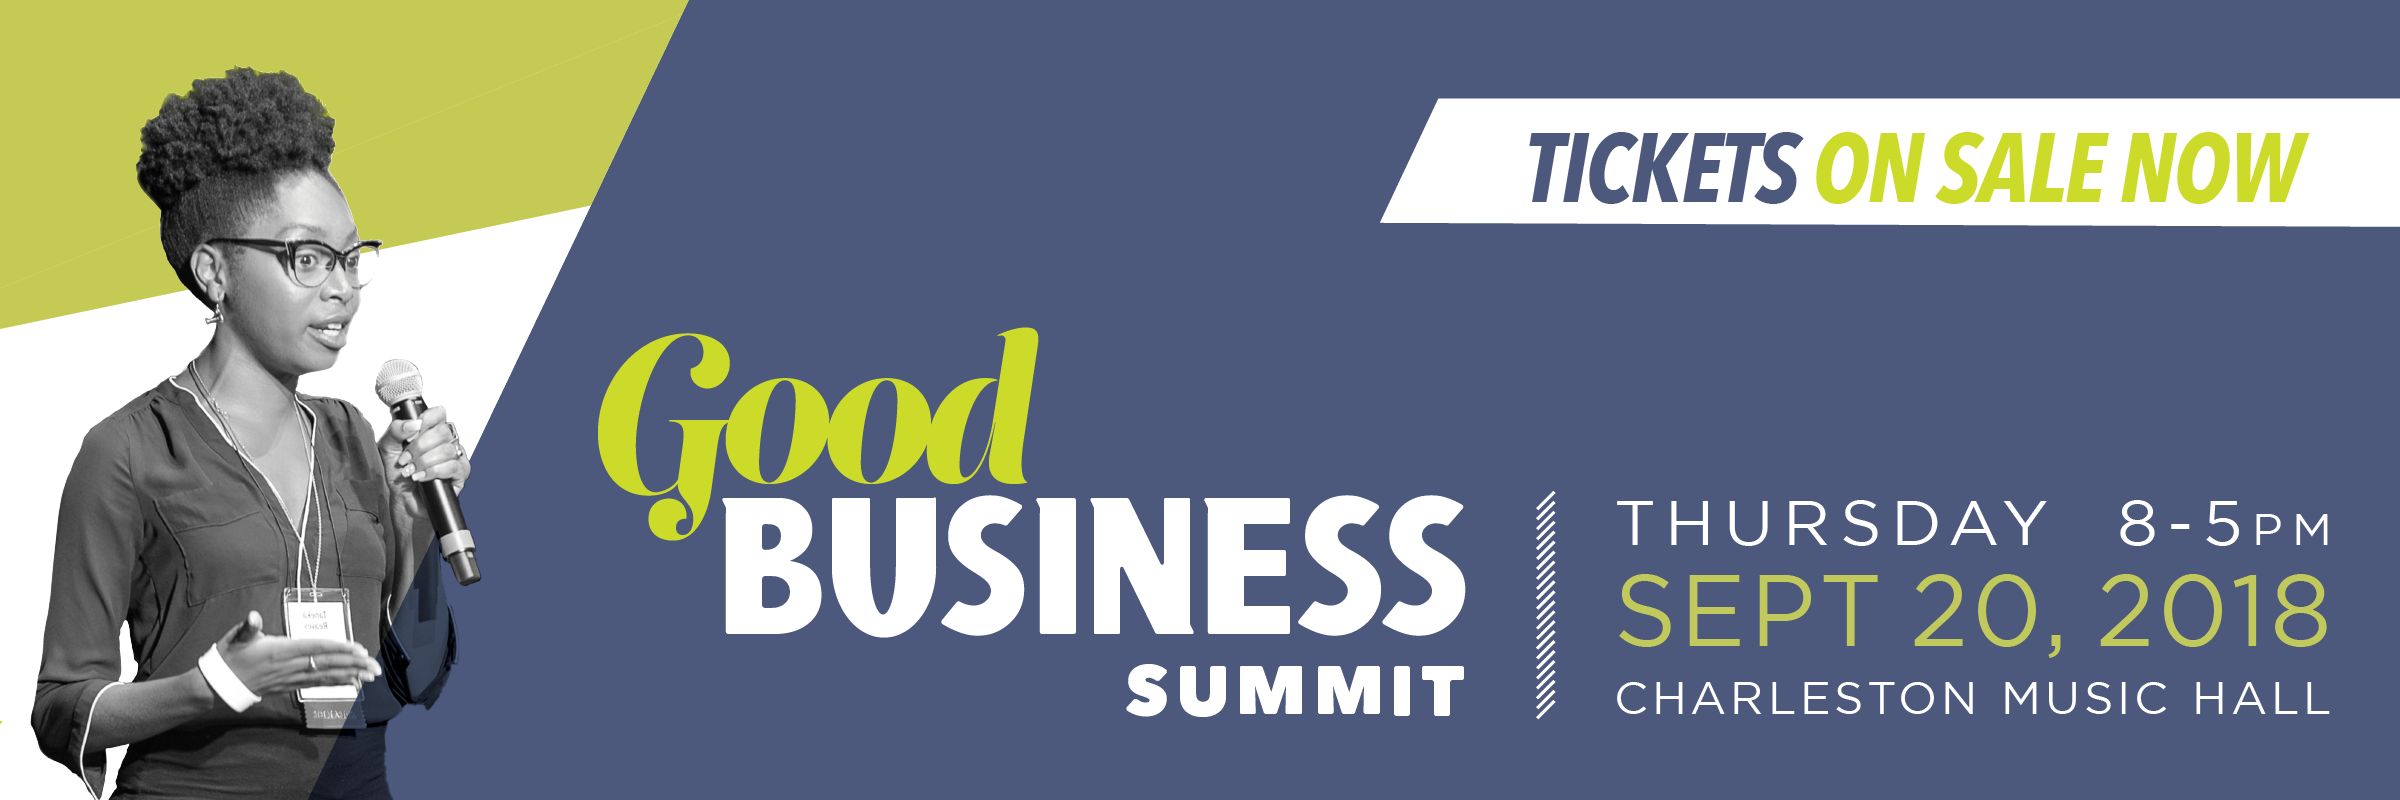 Wetzel Languages Is A Proud Sponsor Of The Good Business Summit